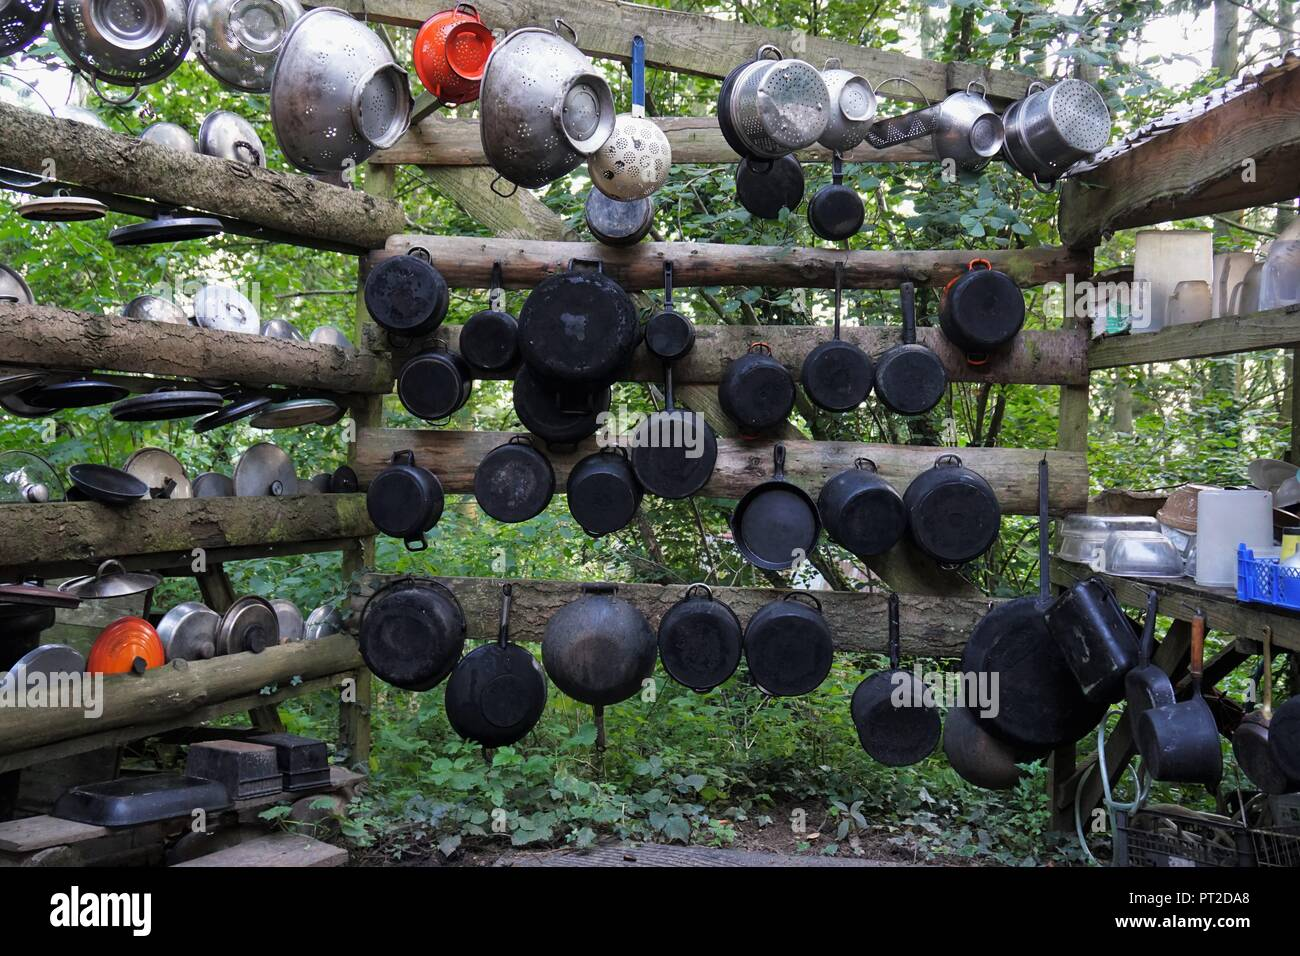 A huge assortment of pots and pans are ready to be used for cooking in a large forest camp. - Stock Image